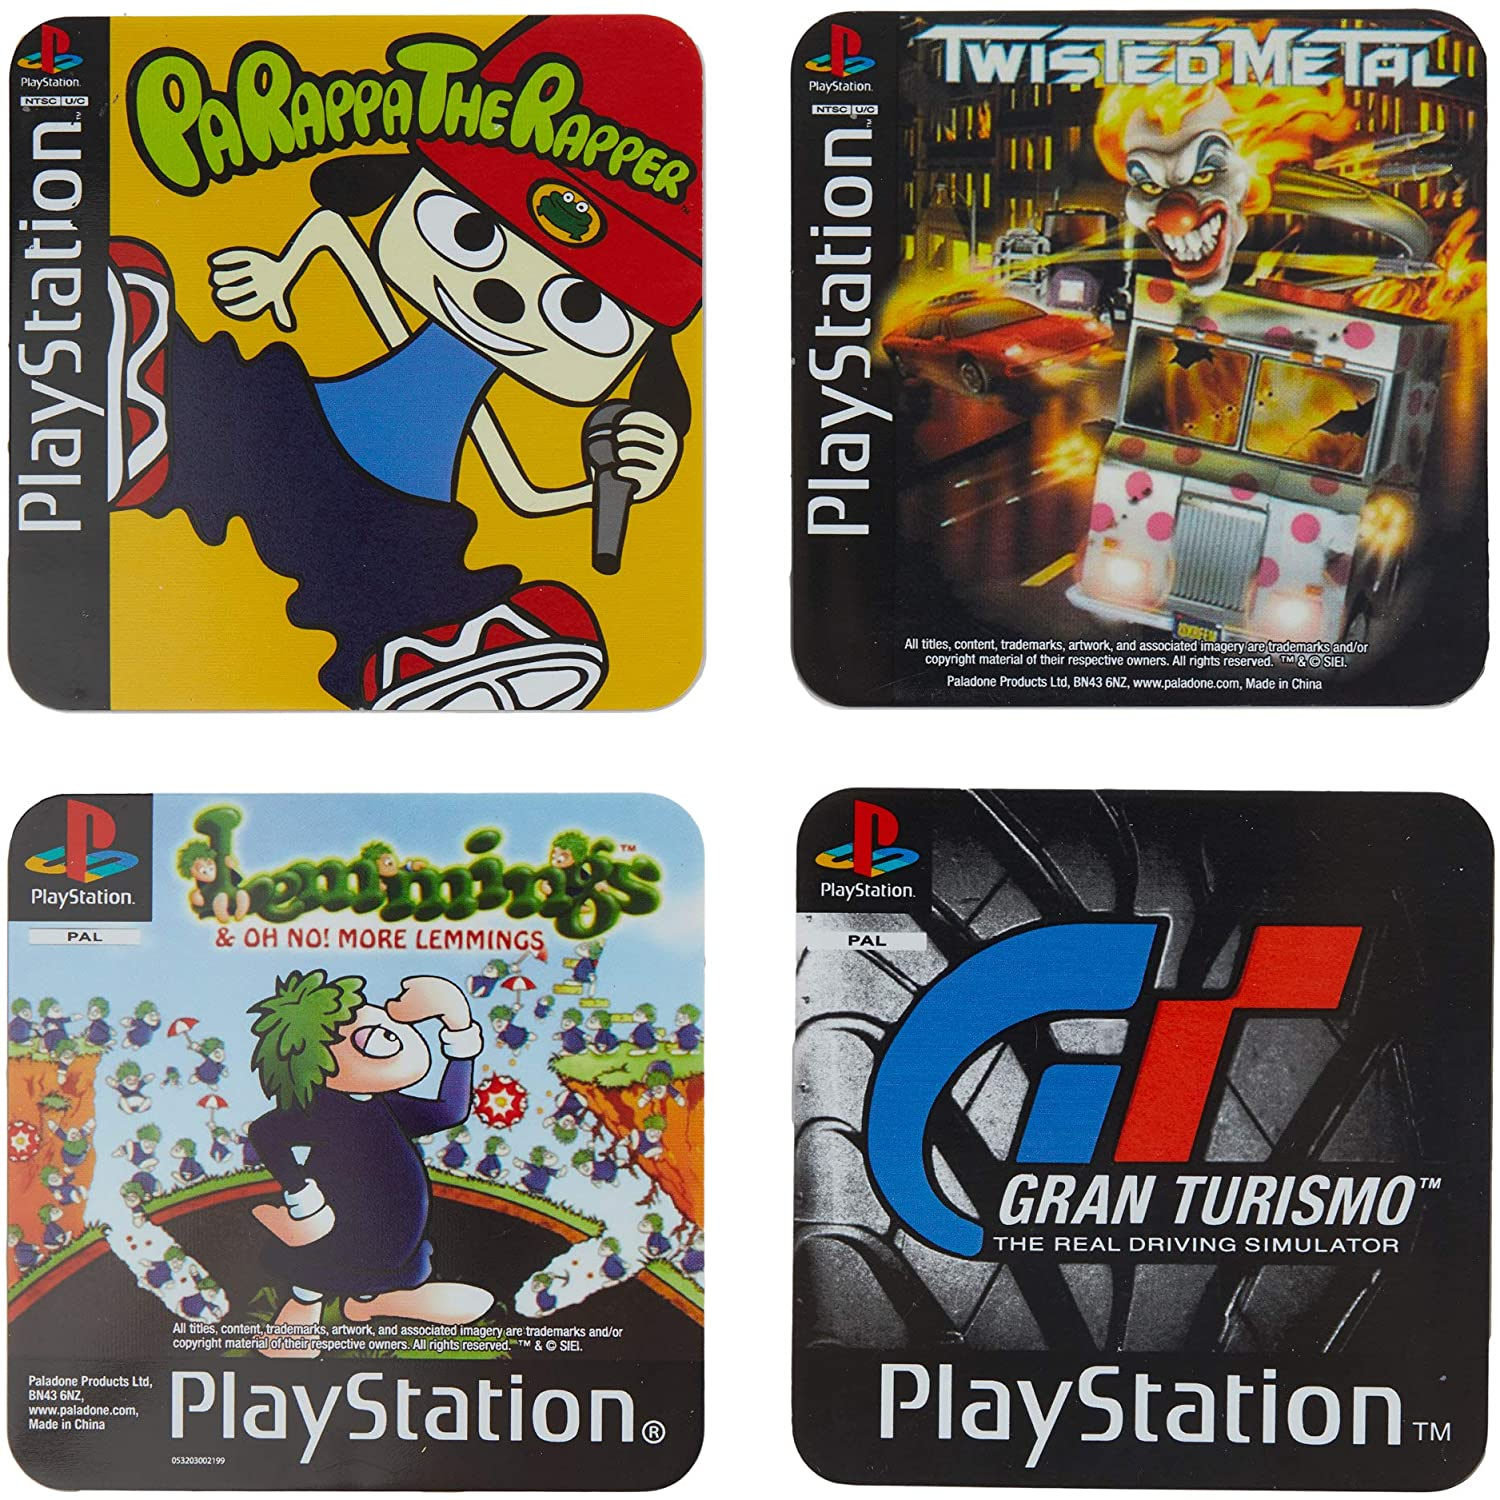 COASTERS PLAYSTATION GAME COASTERS (4 PACK)